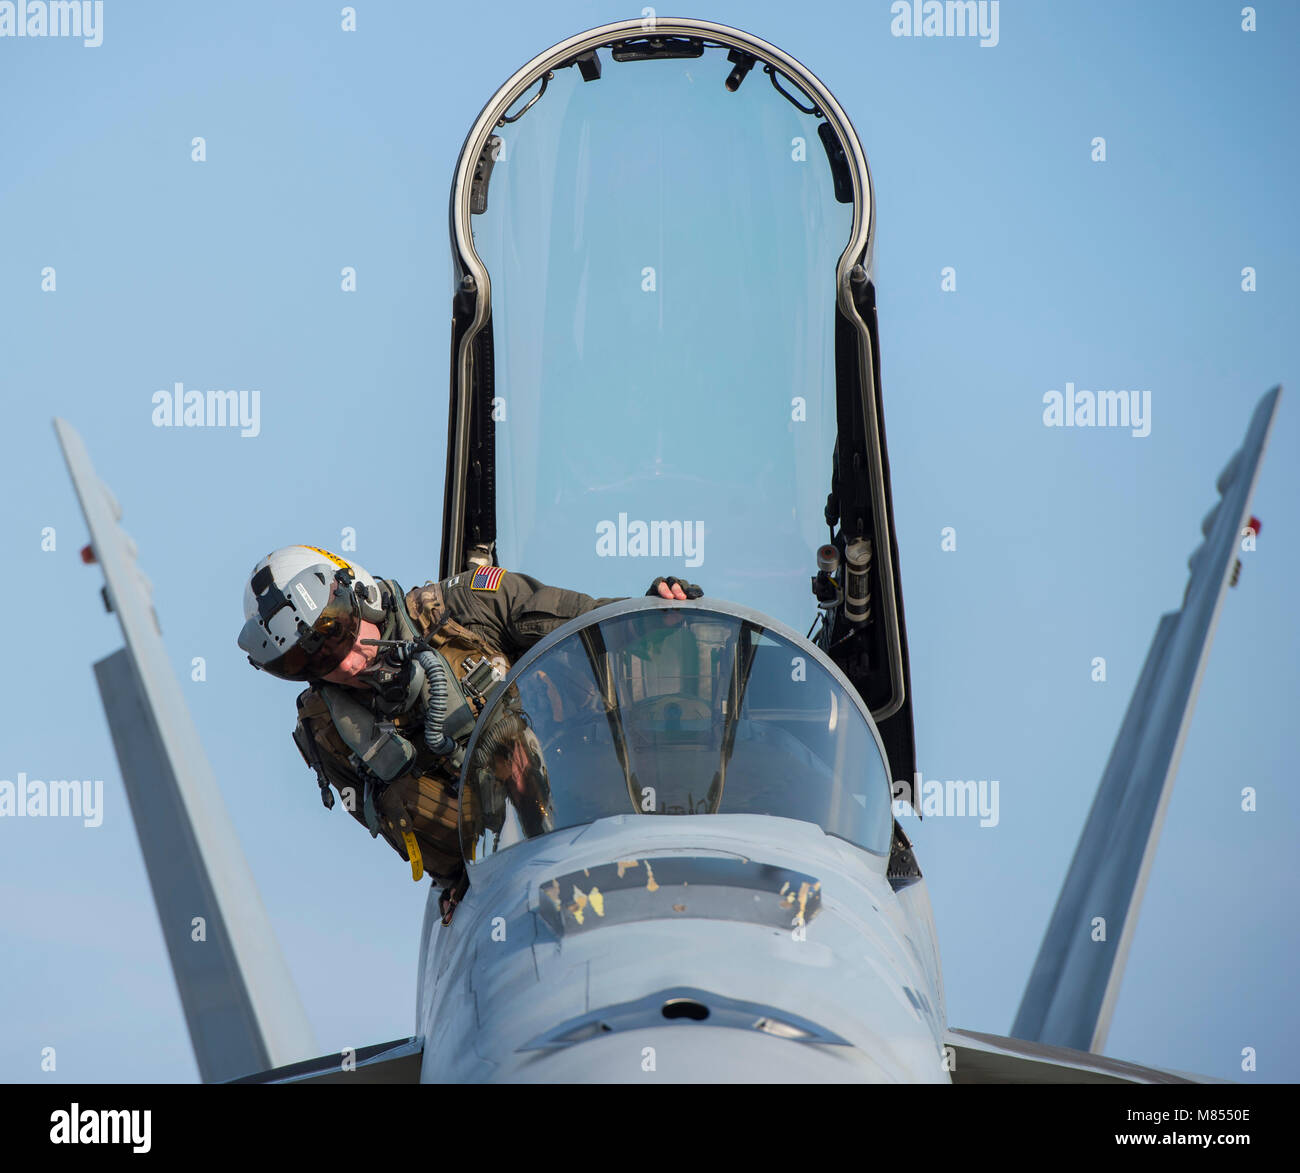 U.S. Navy Lt. Matthew Warshaw, a Strike Fighter Squadron (VFA) 115 F/A-18E Super Hornet pilot, climbs into the cockpit - Stock Image